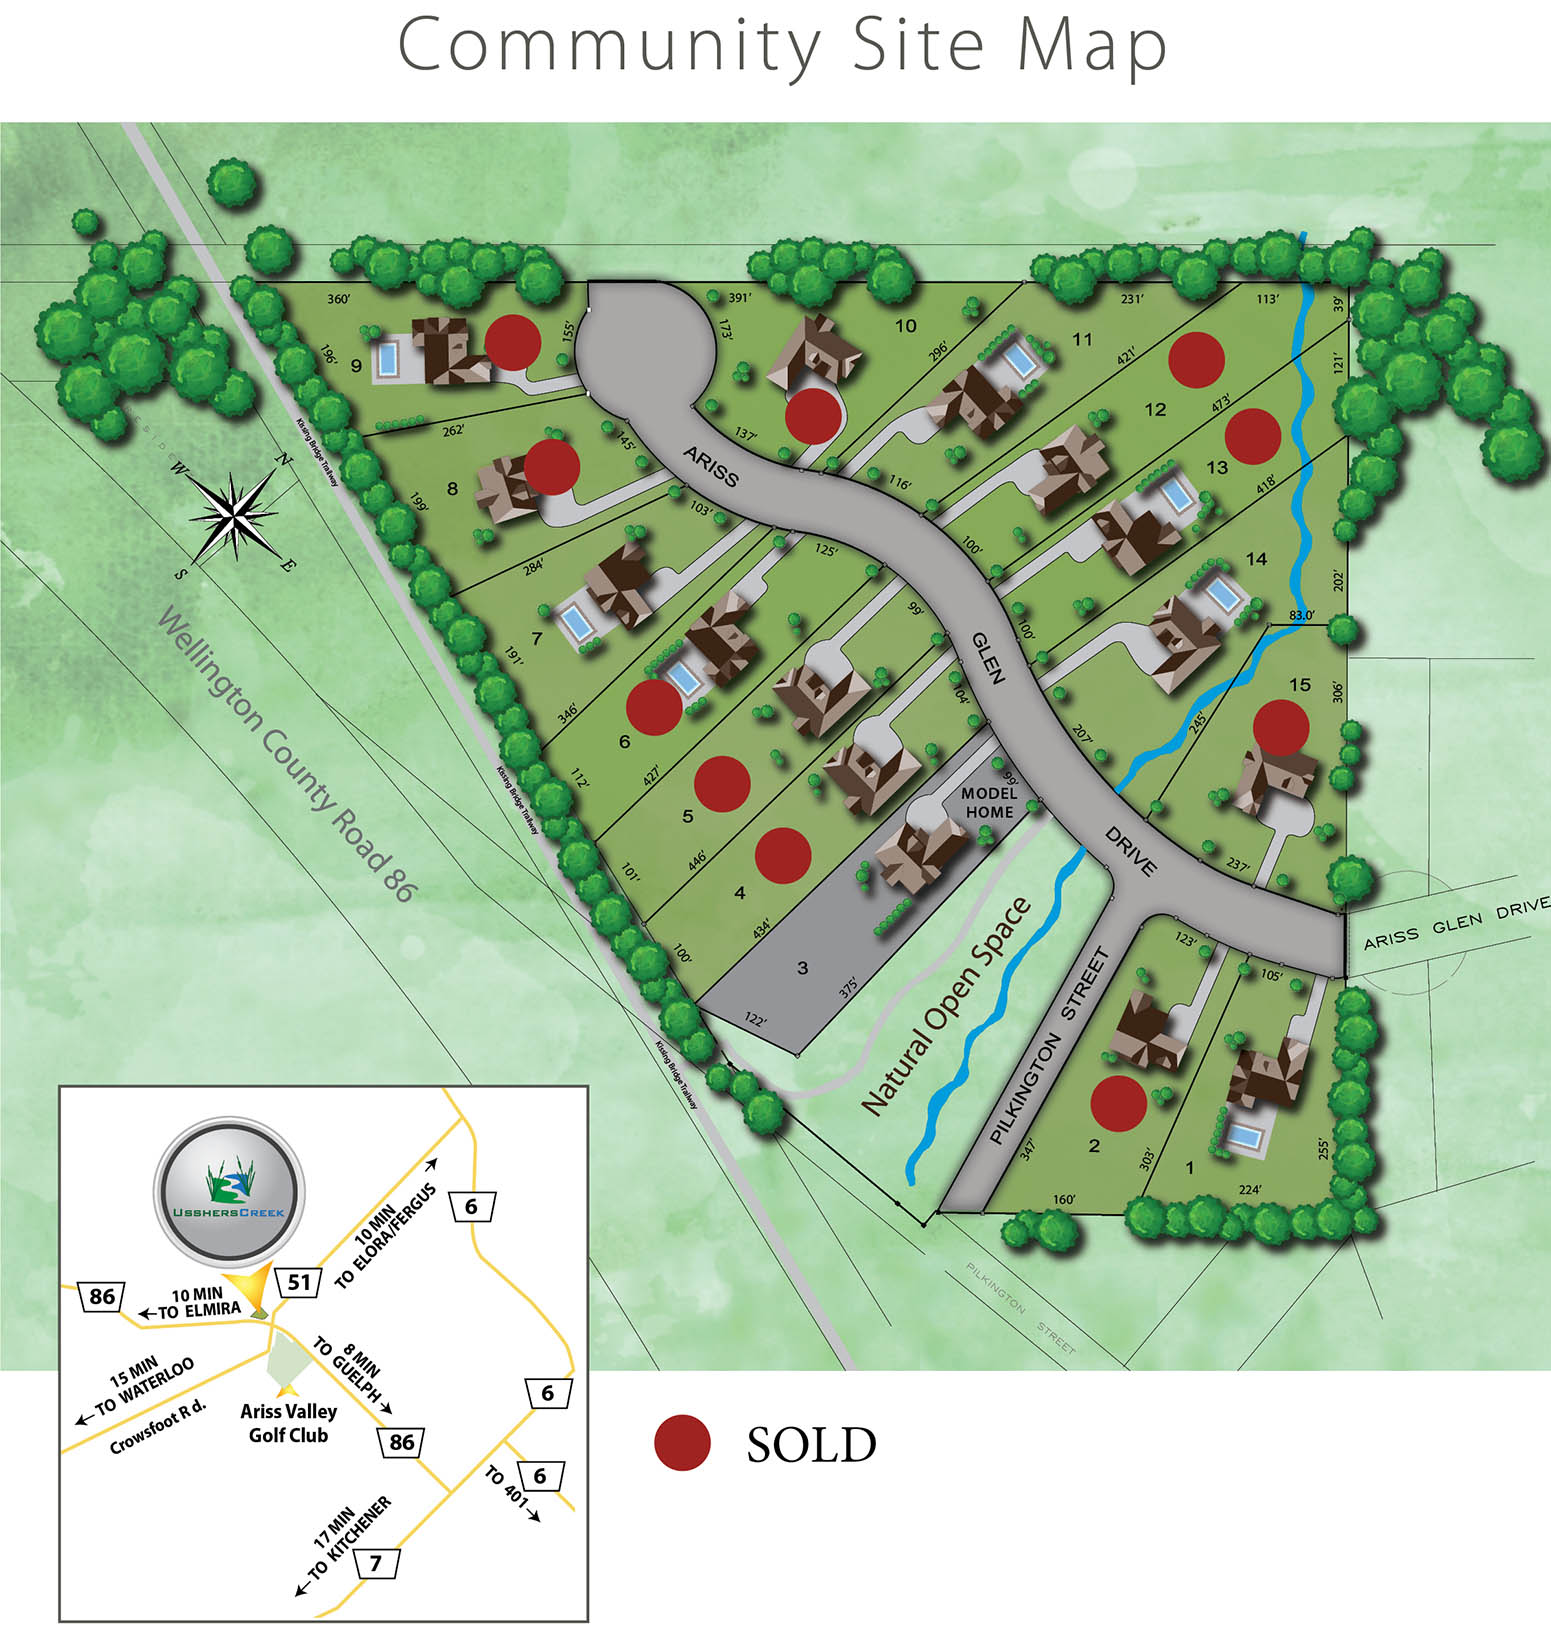 House Site Map Example: New Home Community Development In Guelph